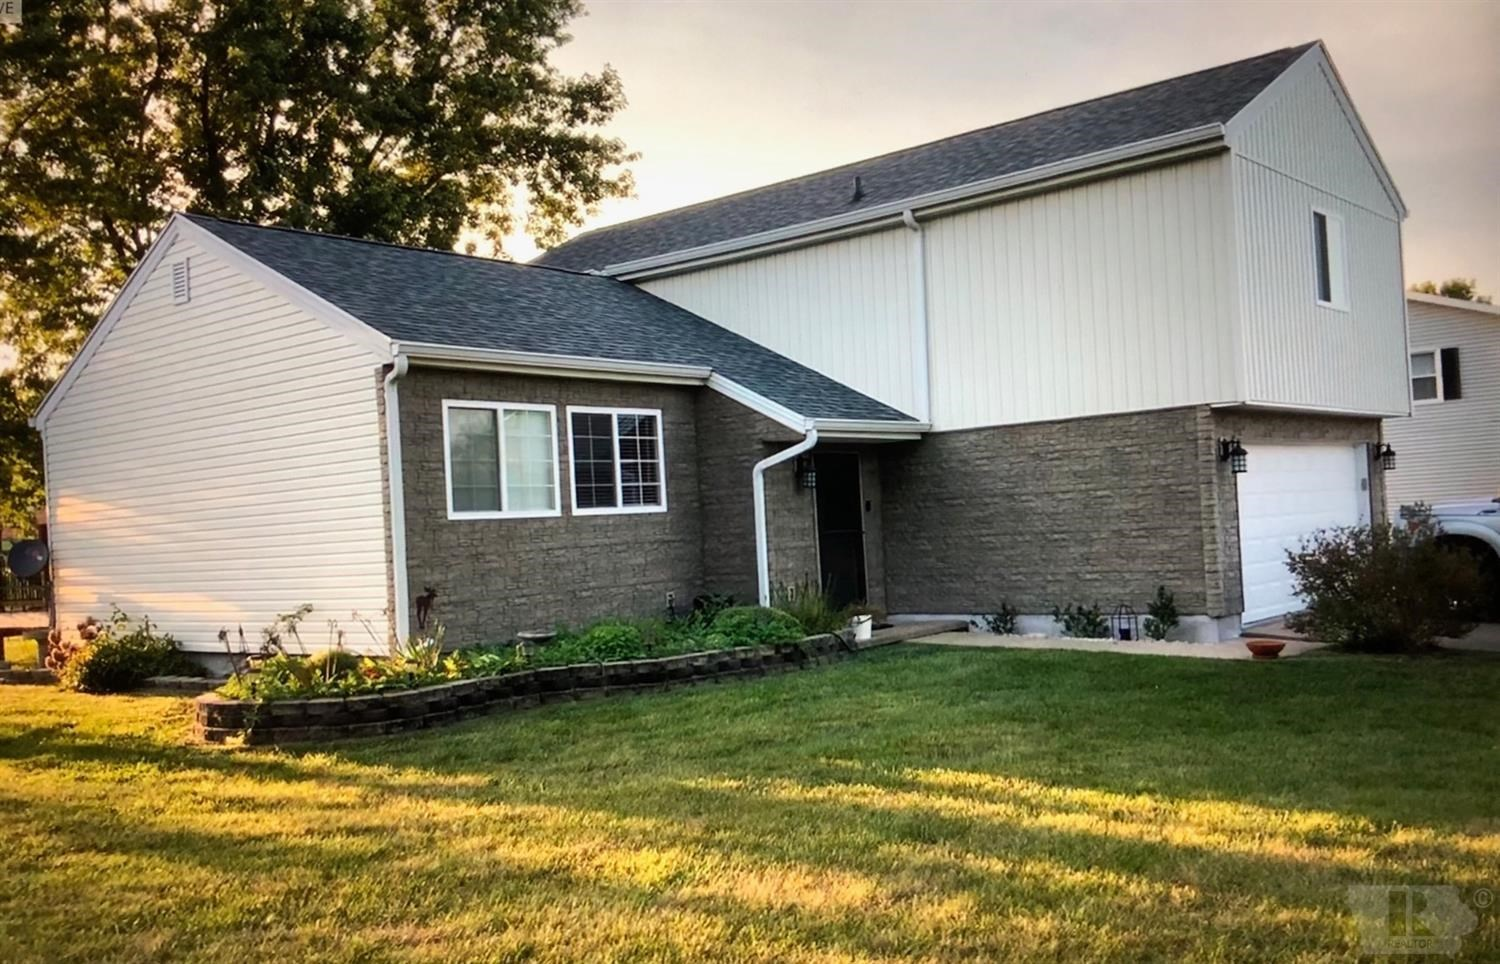 Remodeled Move In Ready Home For Sale in Keokuk, IA